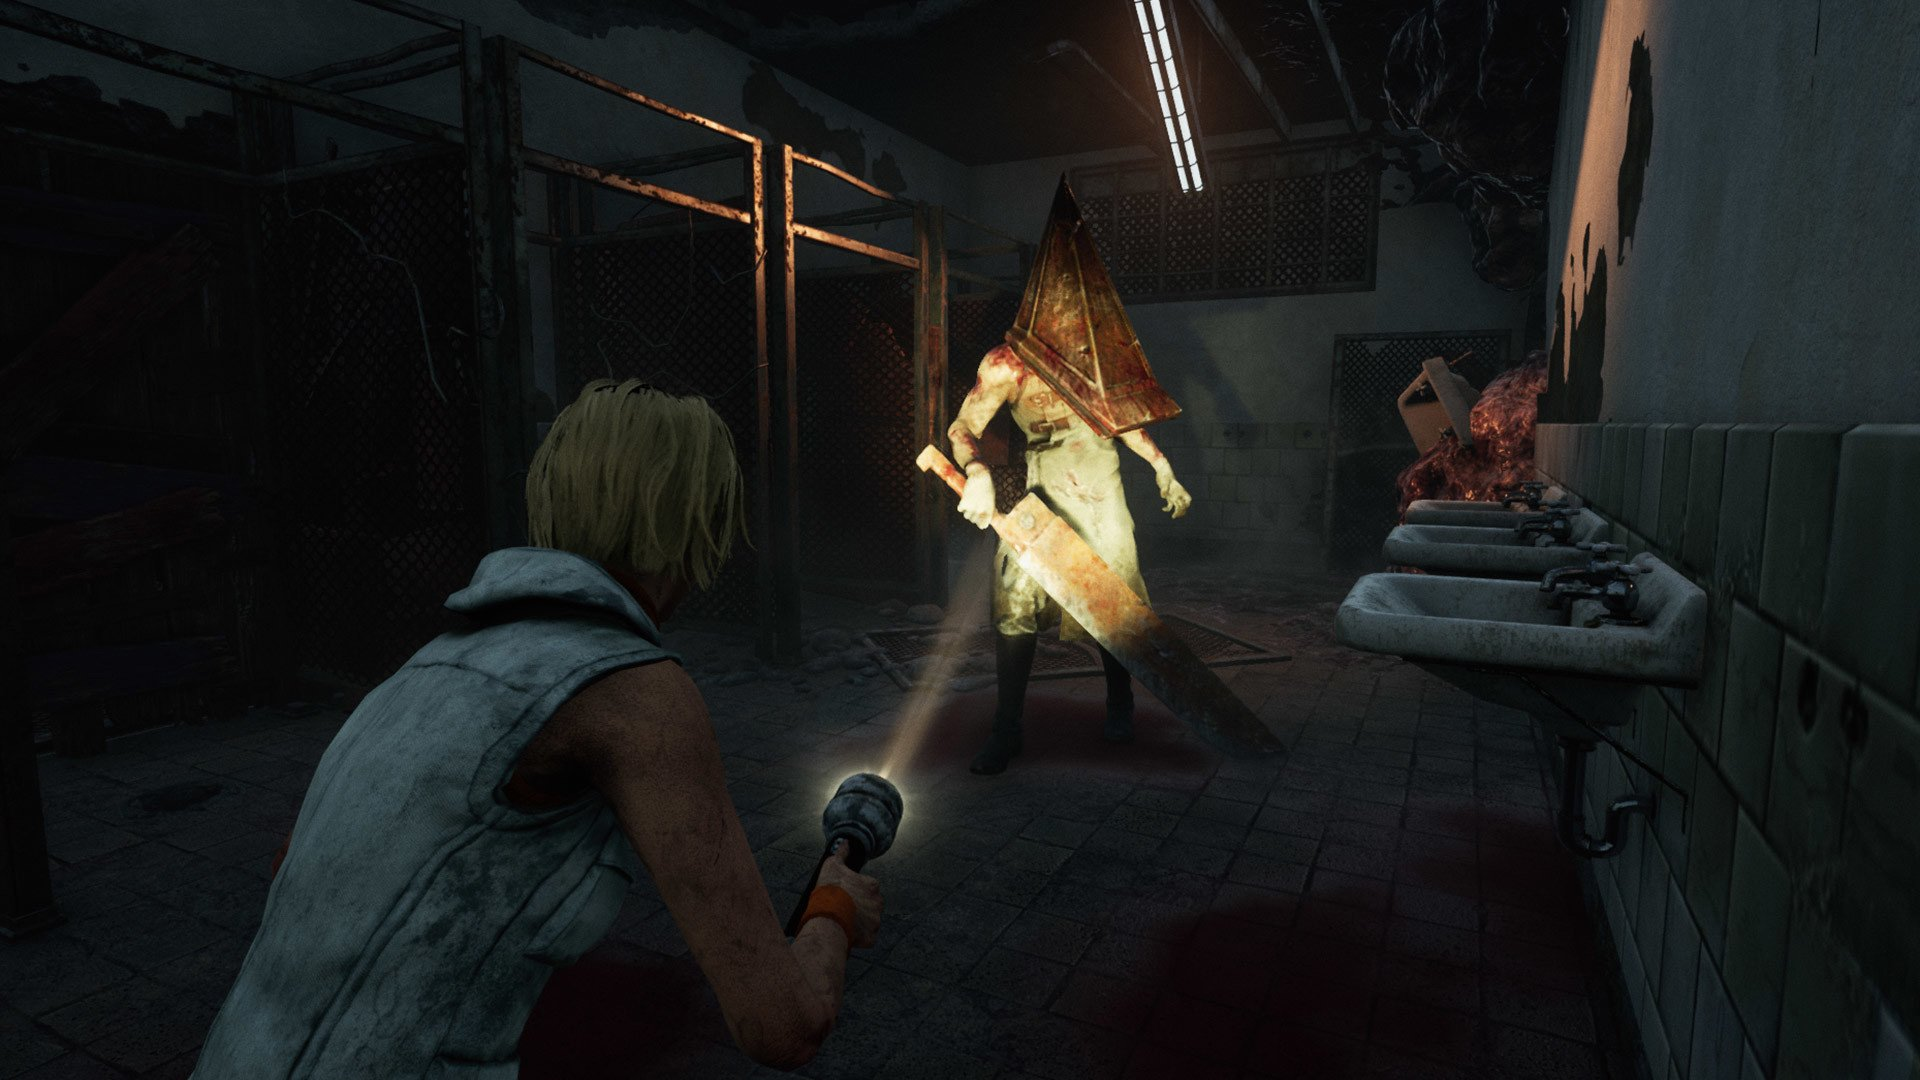 Silent Hill might finally get a proper comeback thanks to a 'prominent Japanese developer' screenshot